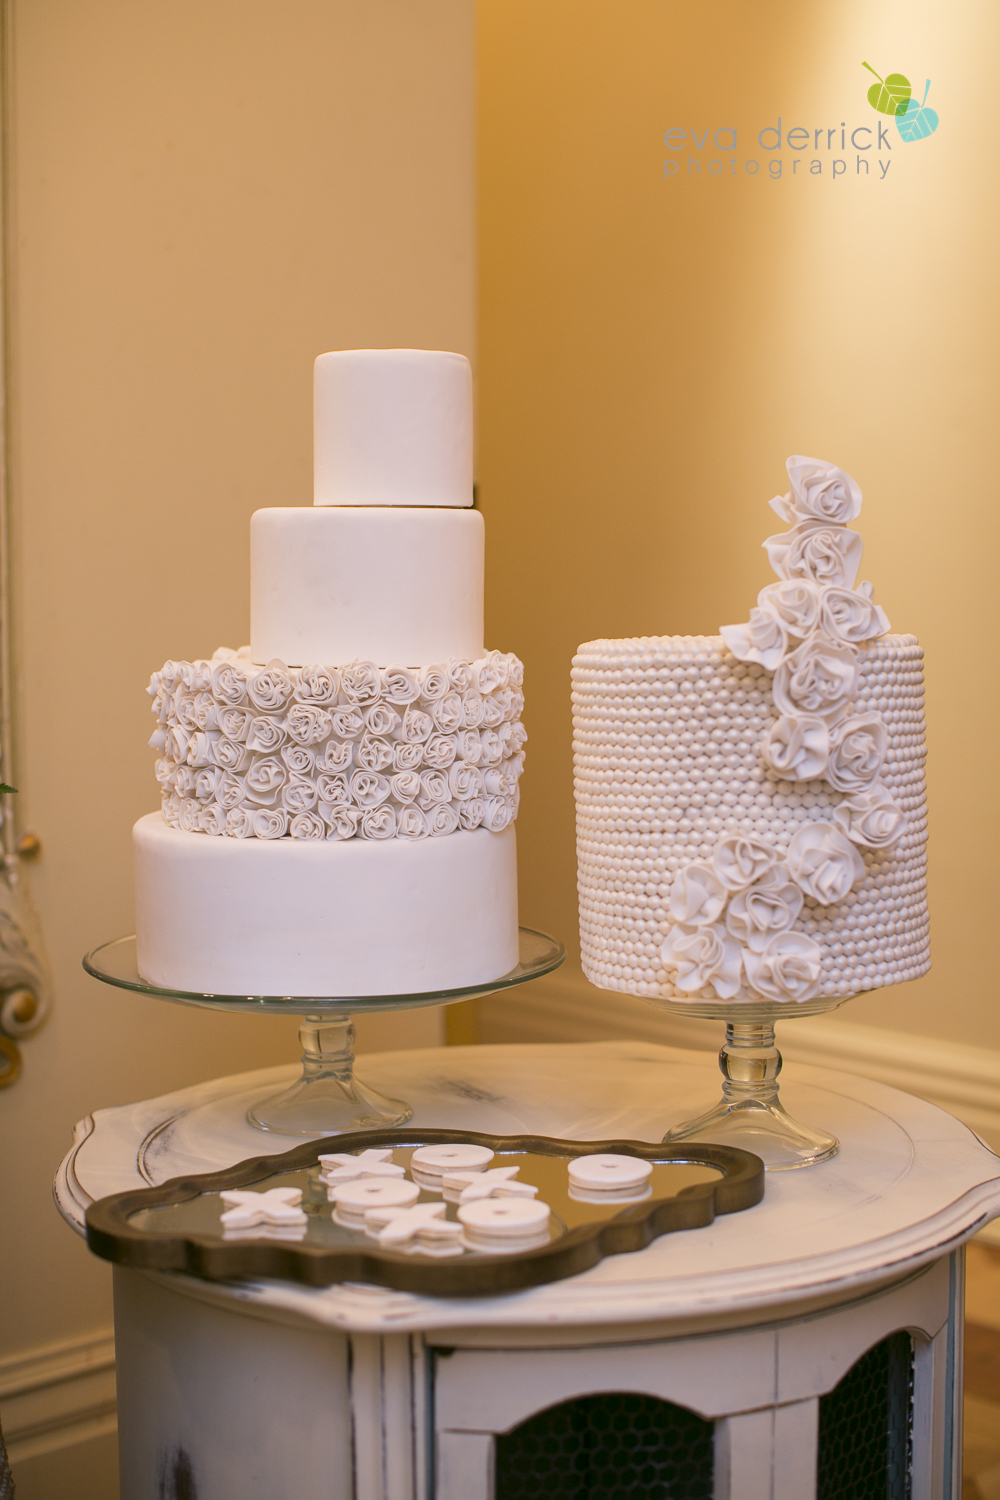 sweet celebrations wedding cakes cake, cupcakes, glitter donuts, macarons, cookies: sweet celebrations wedding cakes